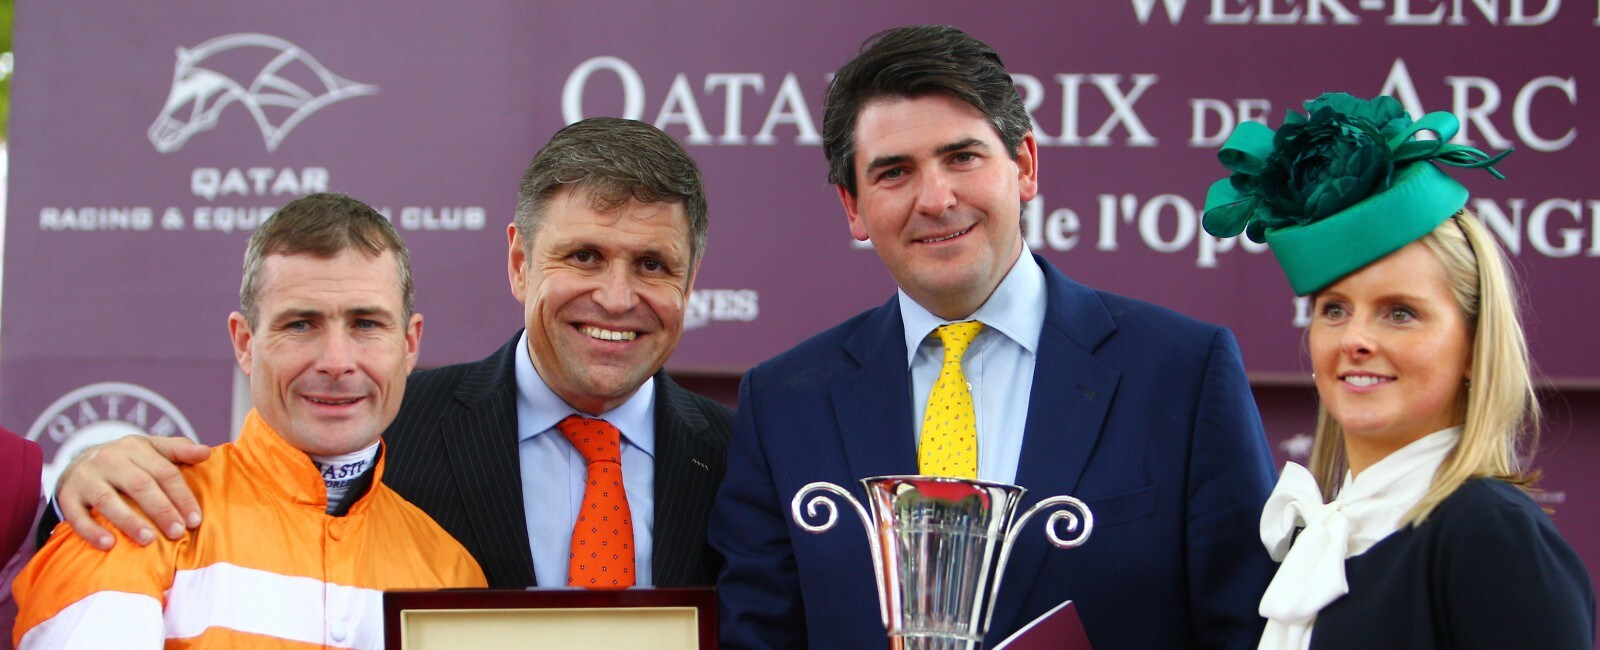 Qatar Prix de l'Arc de Triomphe; Paris; Racing;